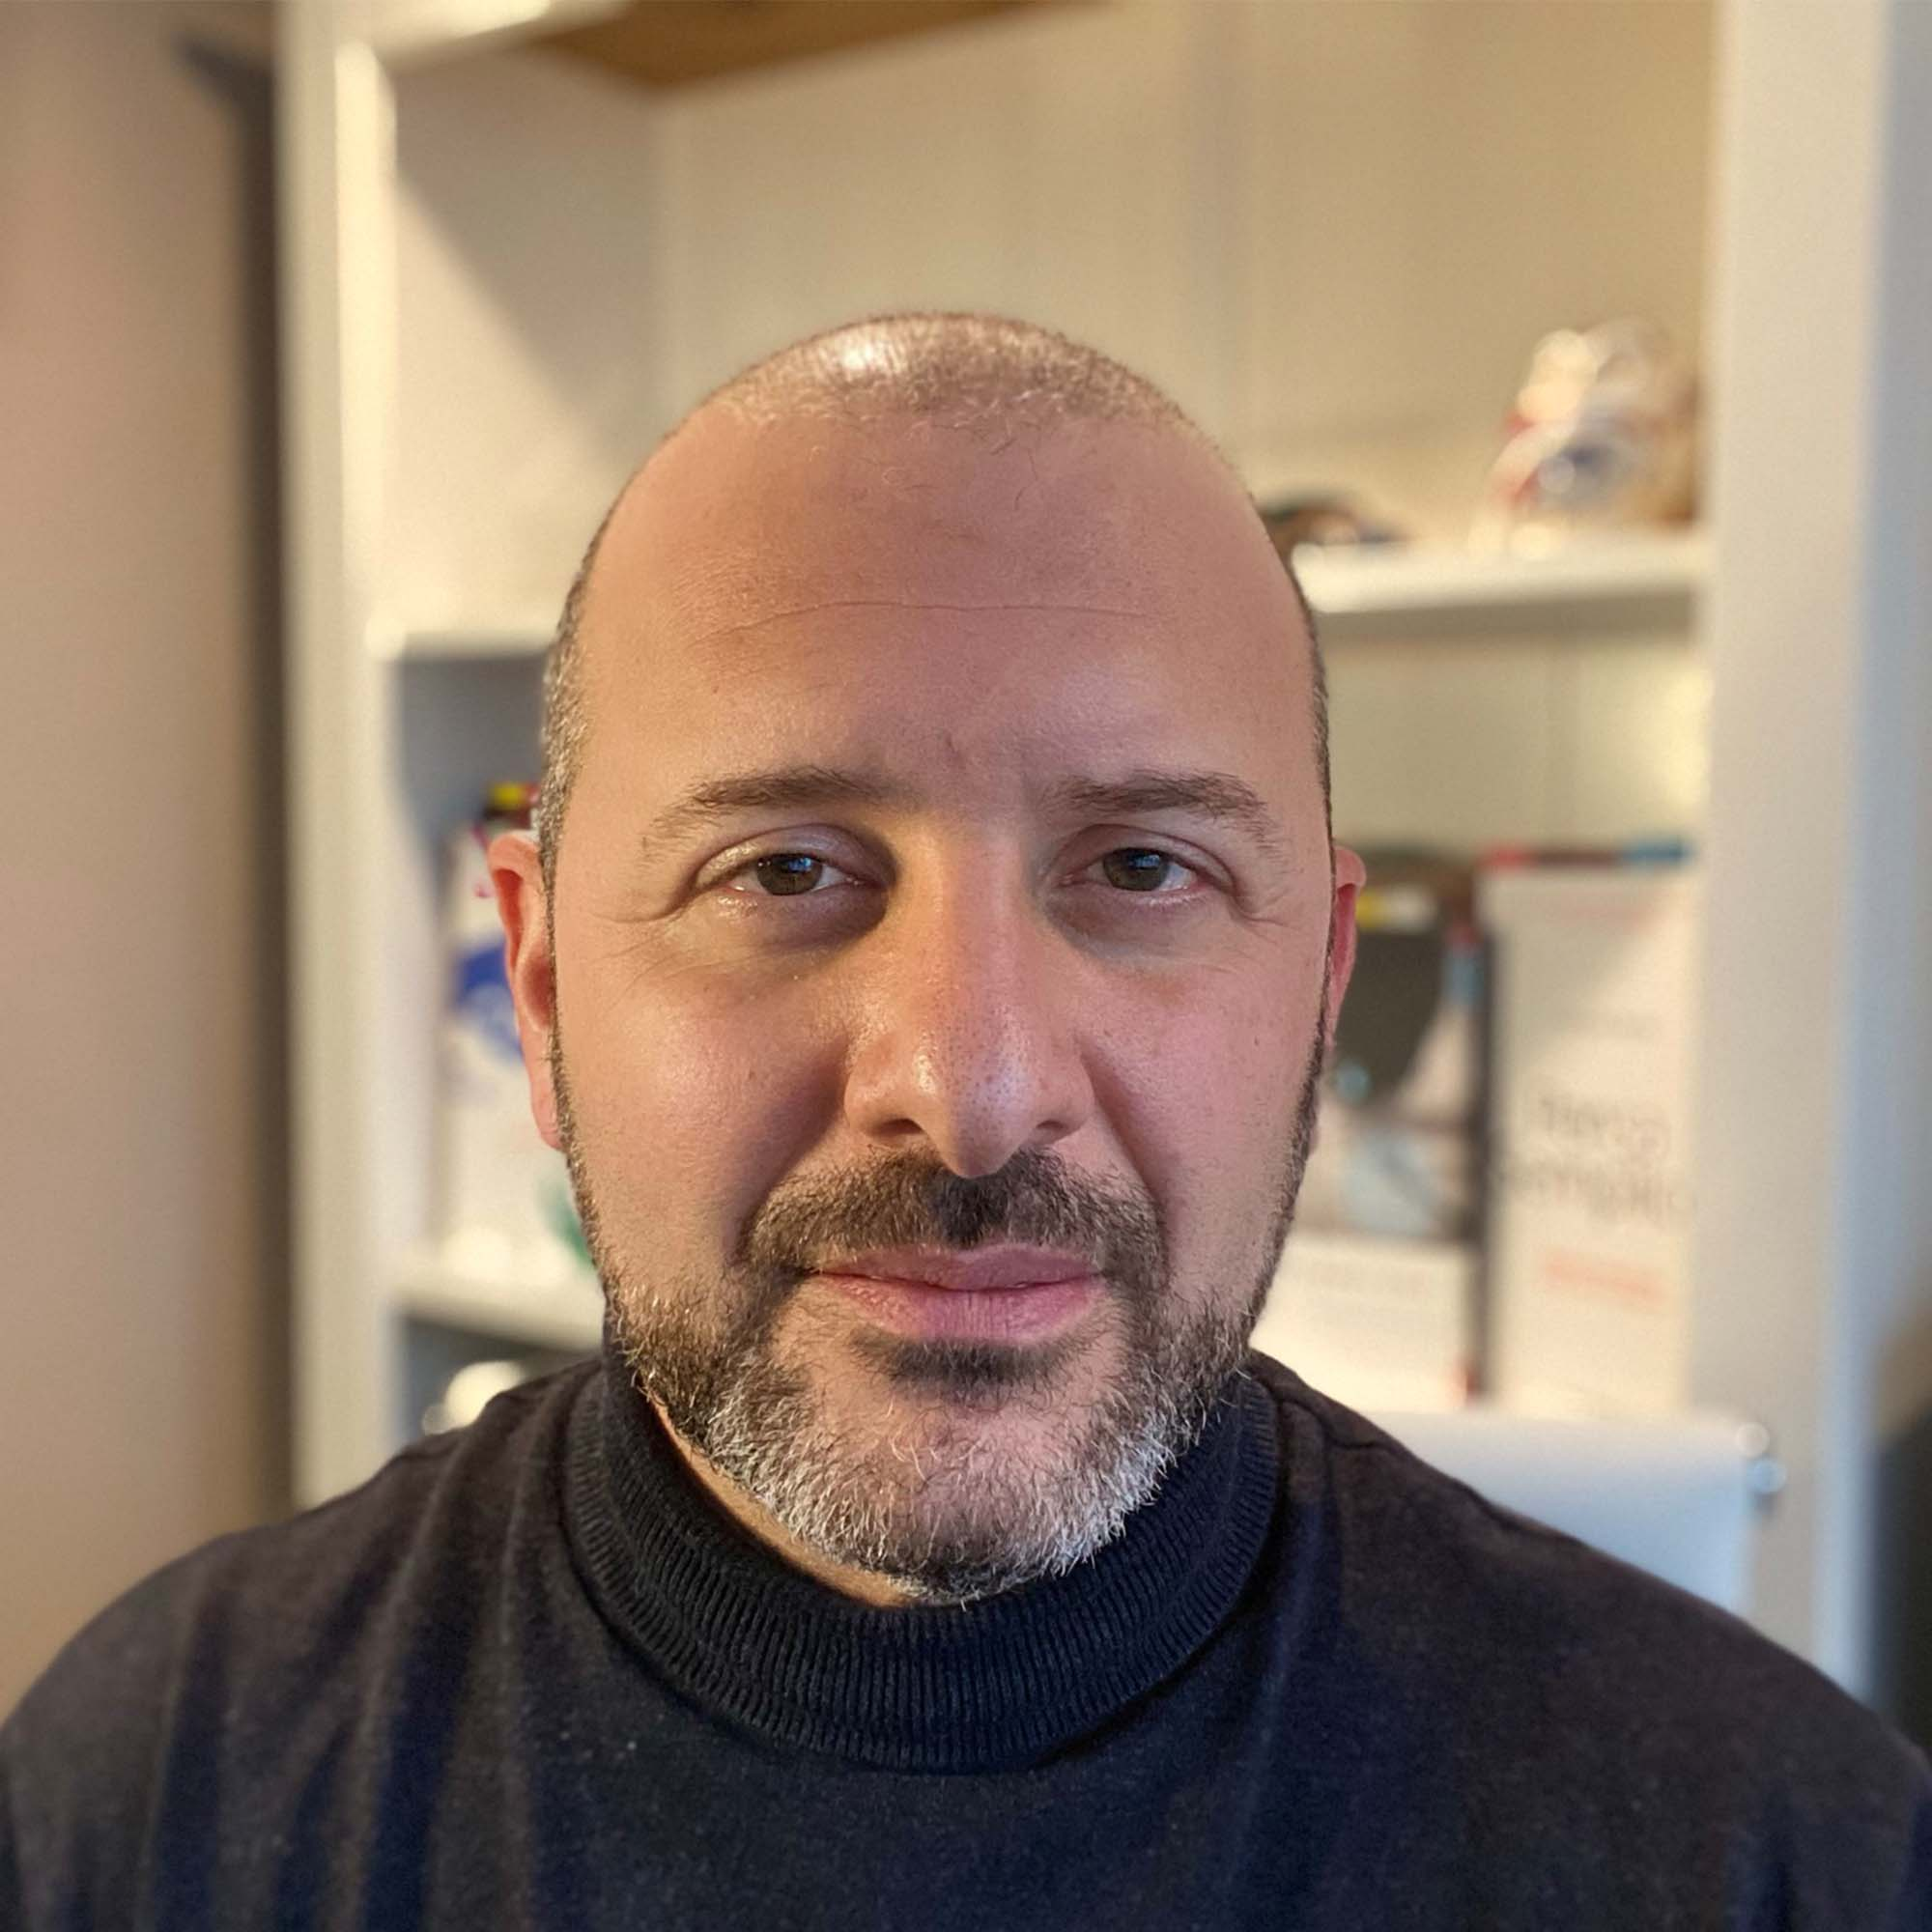 Richard wearing a black top giving a talk in front of an audience.